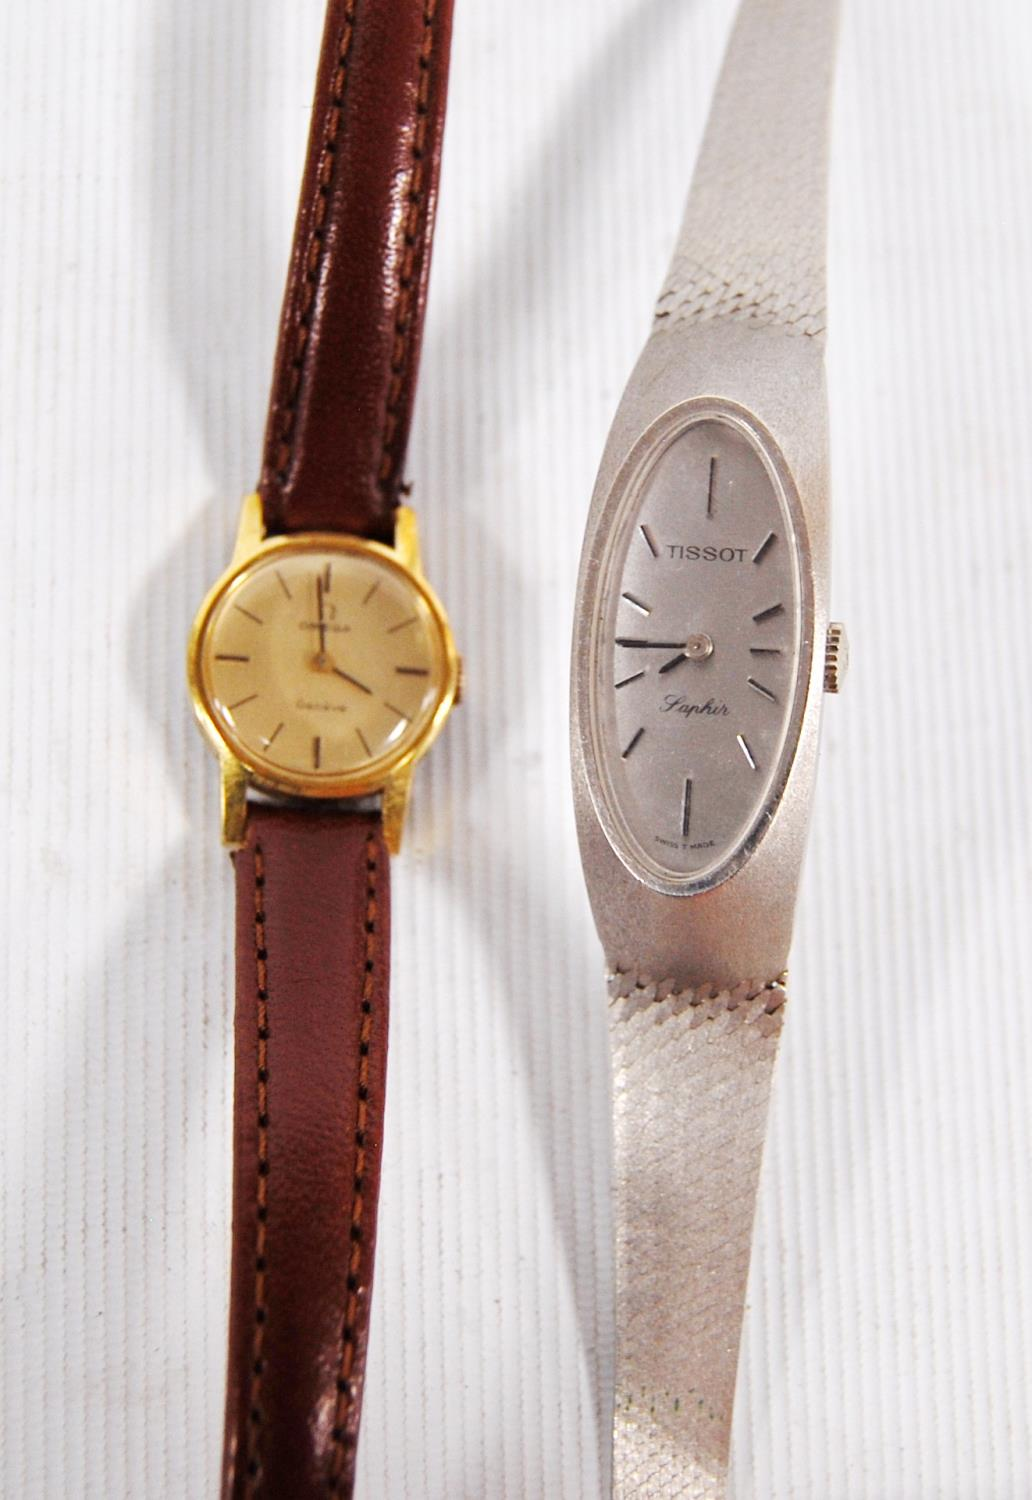 Lady's 14k white gold Tissot Saphir cocktail wristwatch, together with an Omega Genève